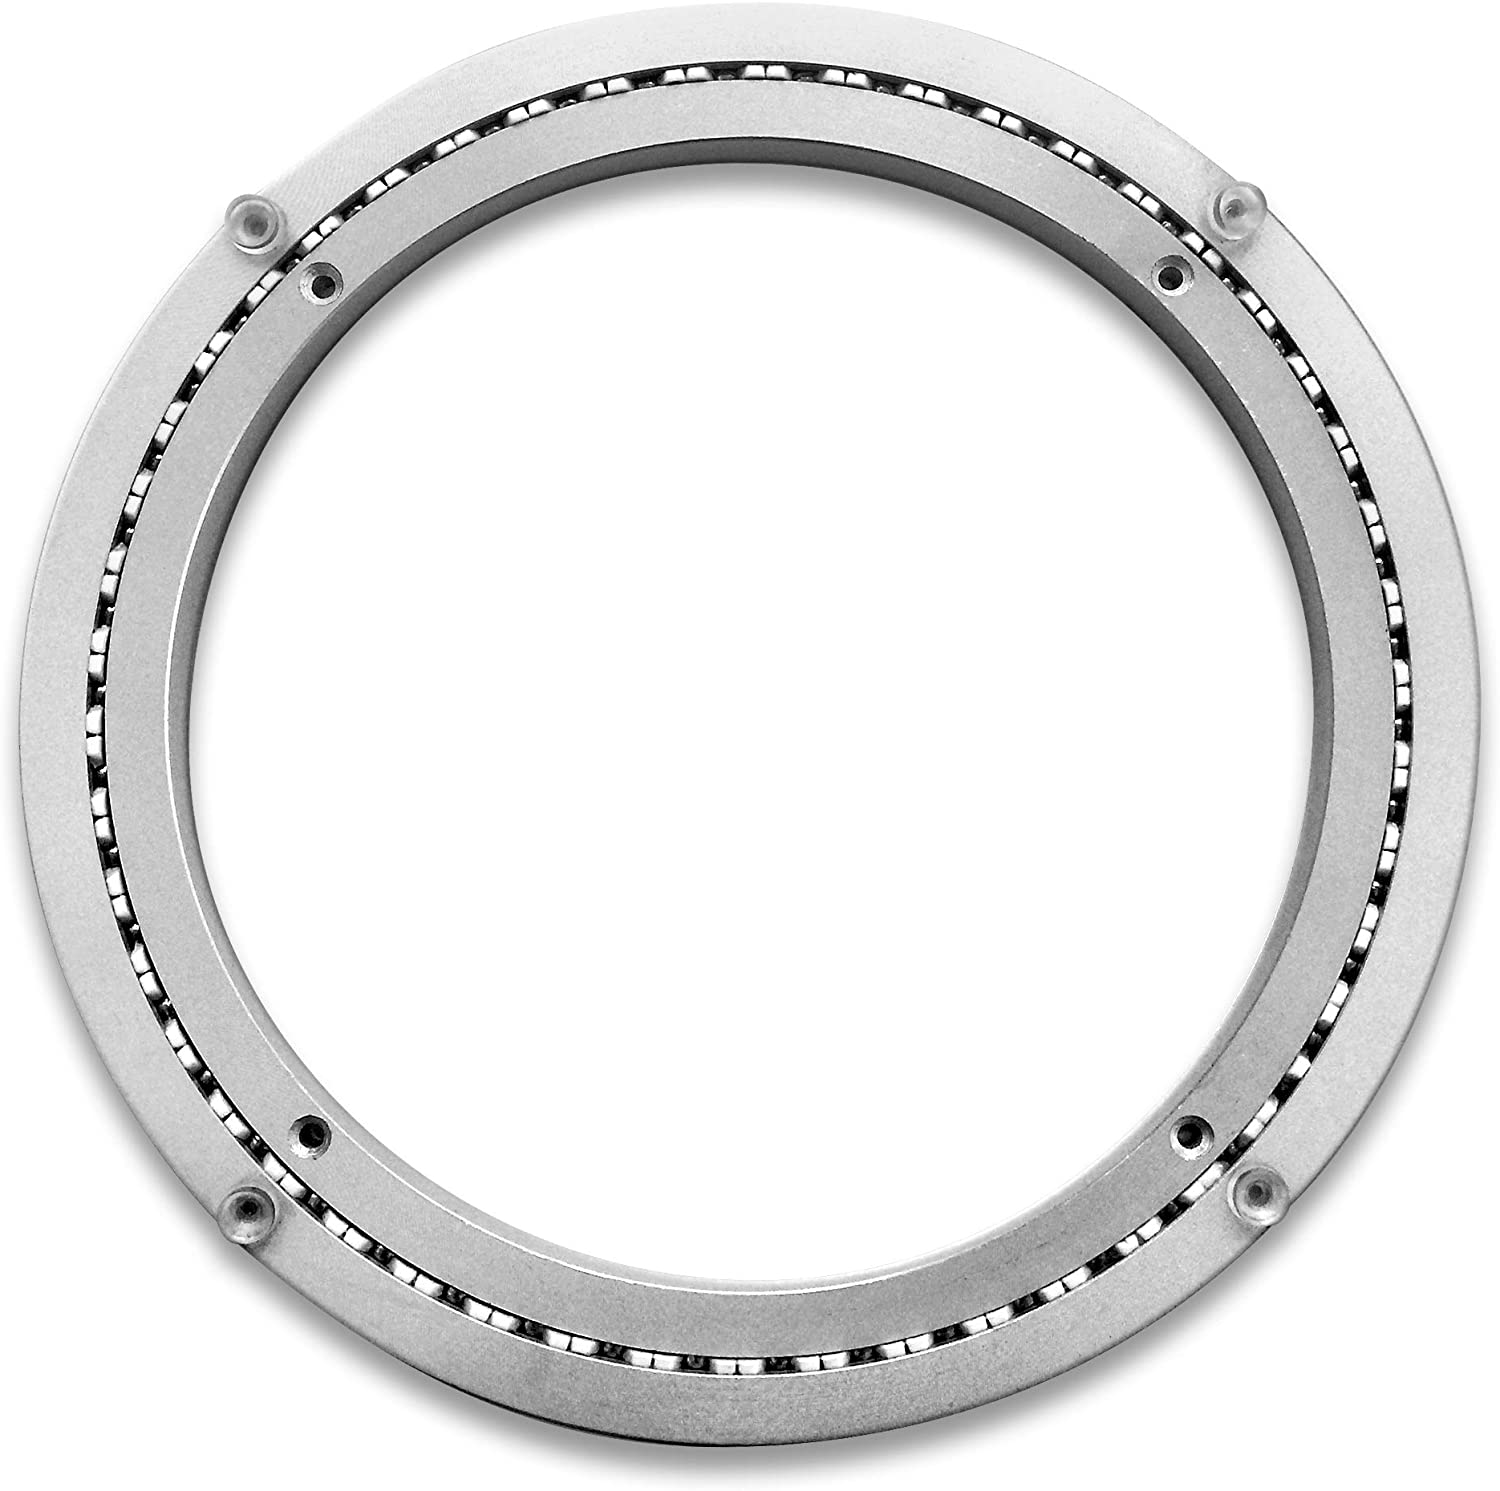 Medium-Duty Aluminum Lazy Susan Ring//Turntable with Single-Row Ball Bearings for Medium Loads MD 8-Inch